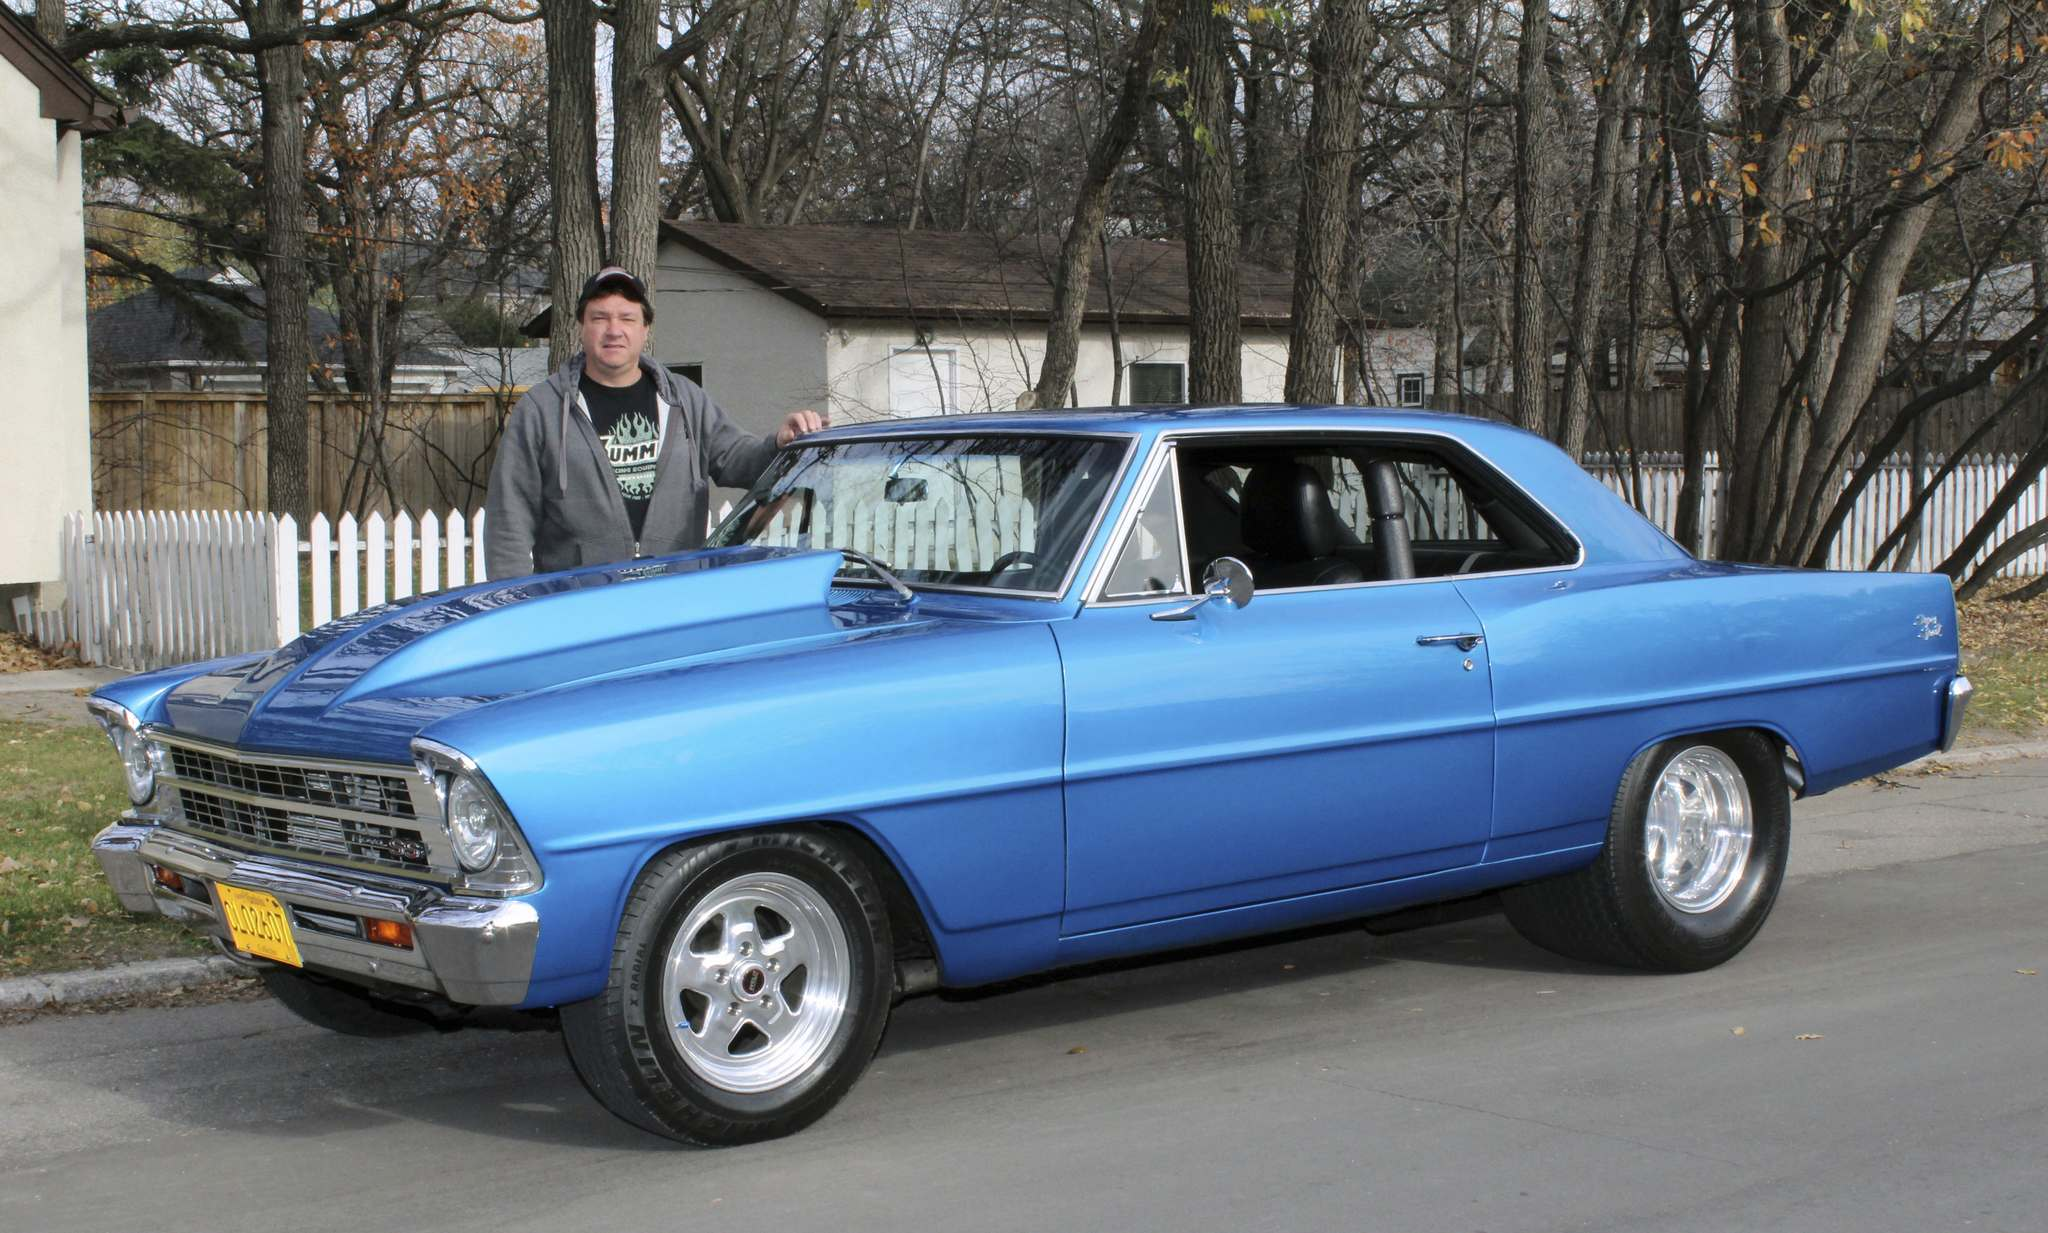 Photos by Larry D'Argis / Winnipeg Free PressDave Geraldi is pumped about his 1967 Chevy Nova SS hardtop. He scored the ride out of classified ads in the Niagara Falls area, and he's taken the blue beauty to car shows and cruise nights.